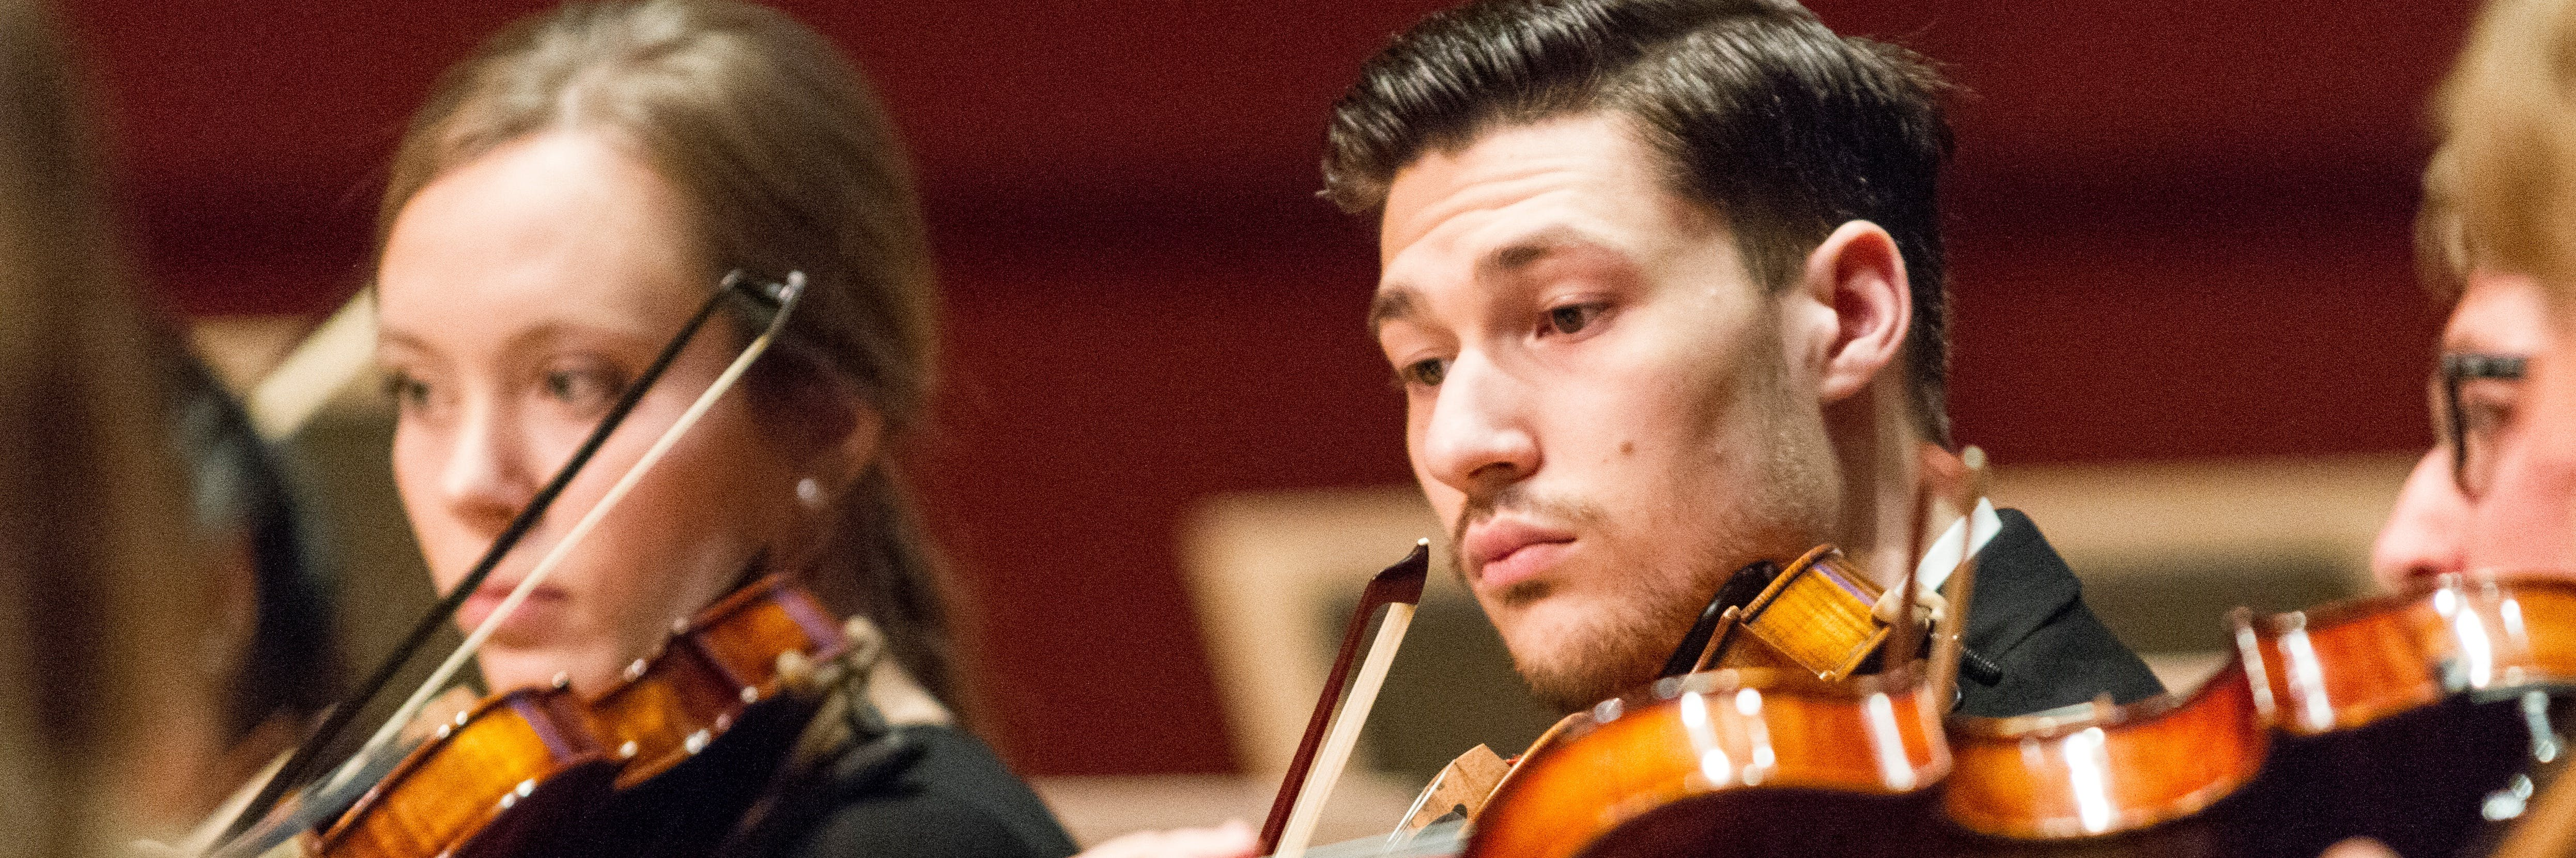 A student violinist performing